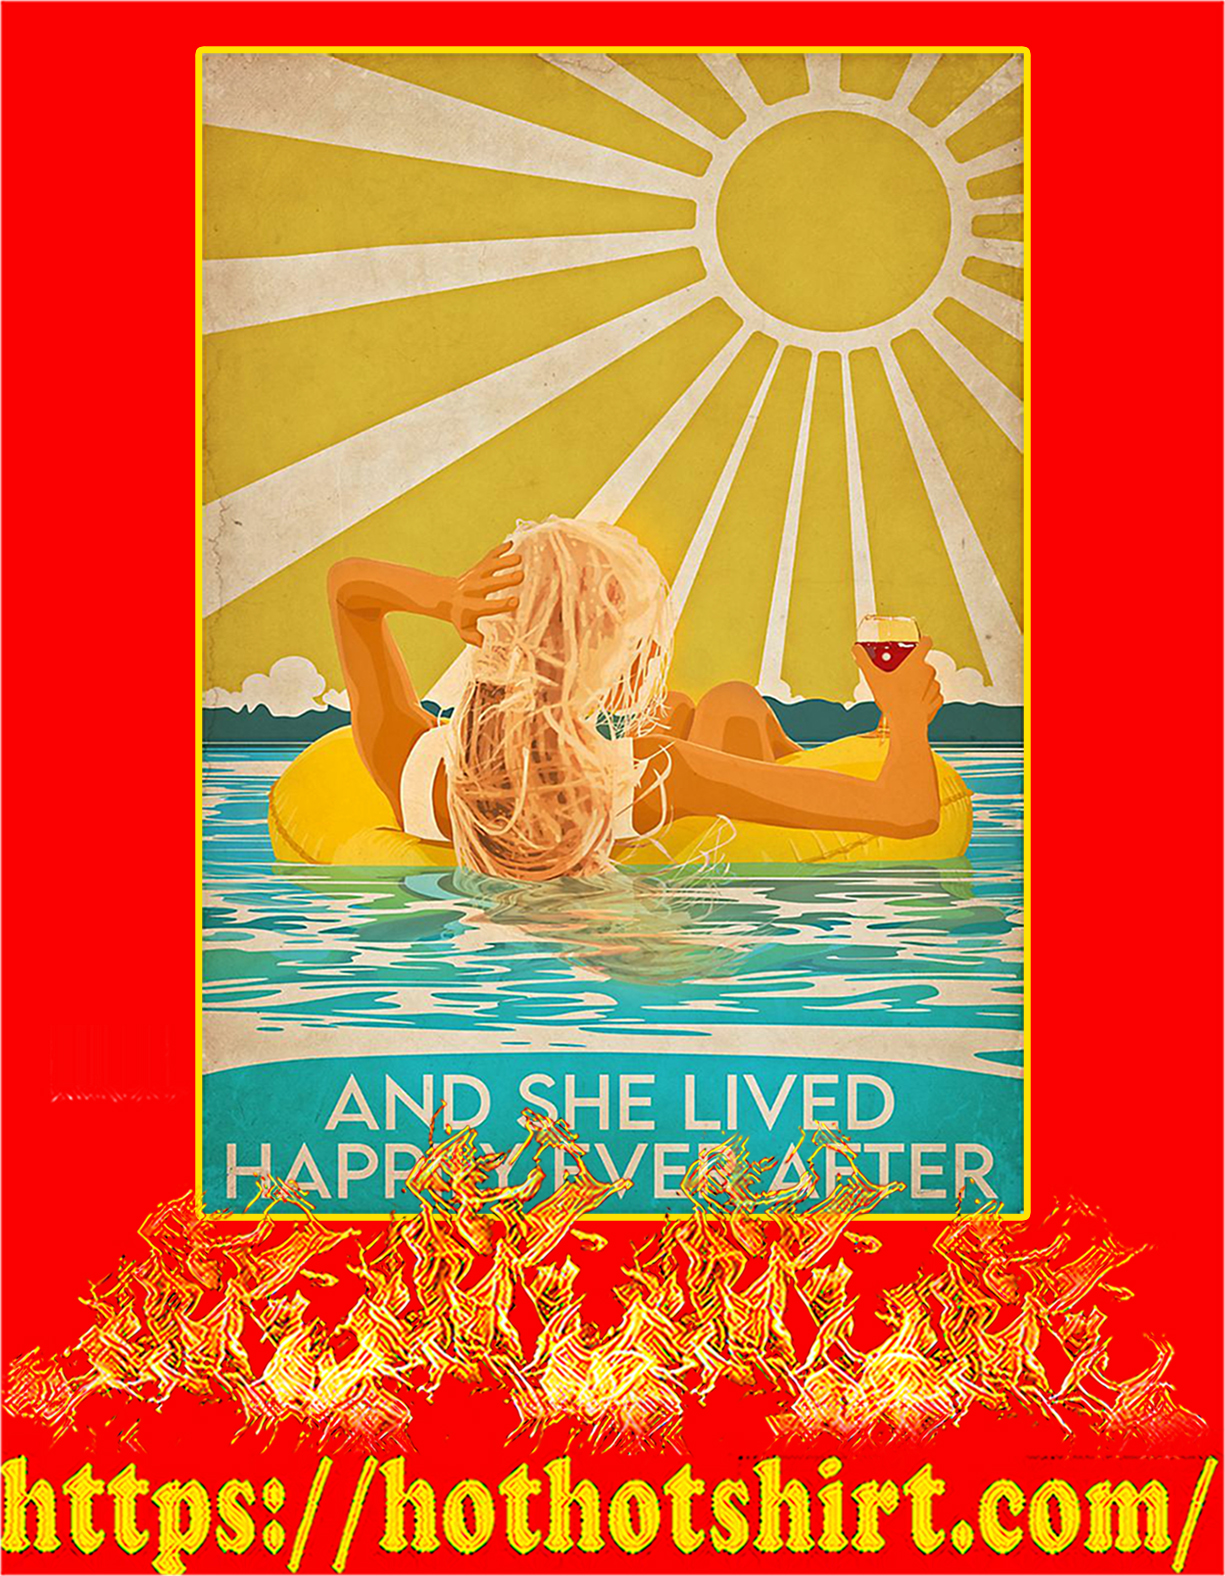 Swimming blonde and she lived happily after poster - A4